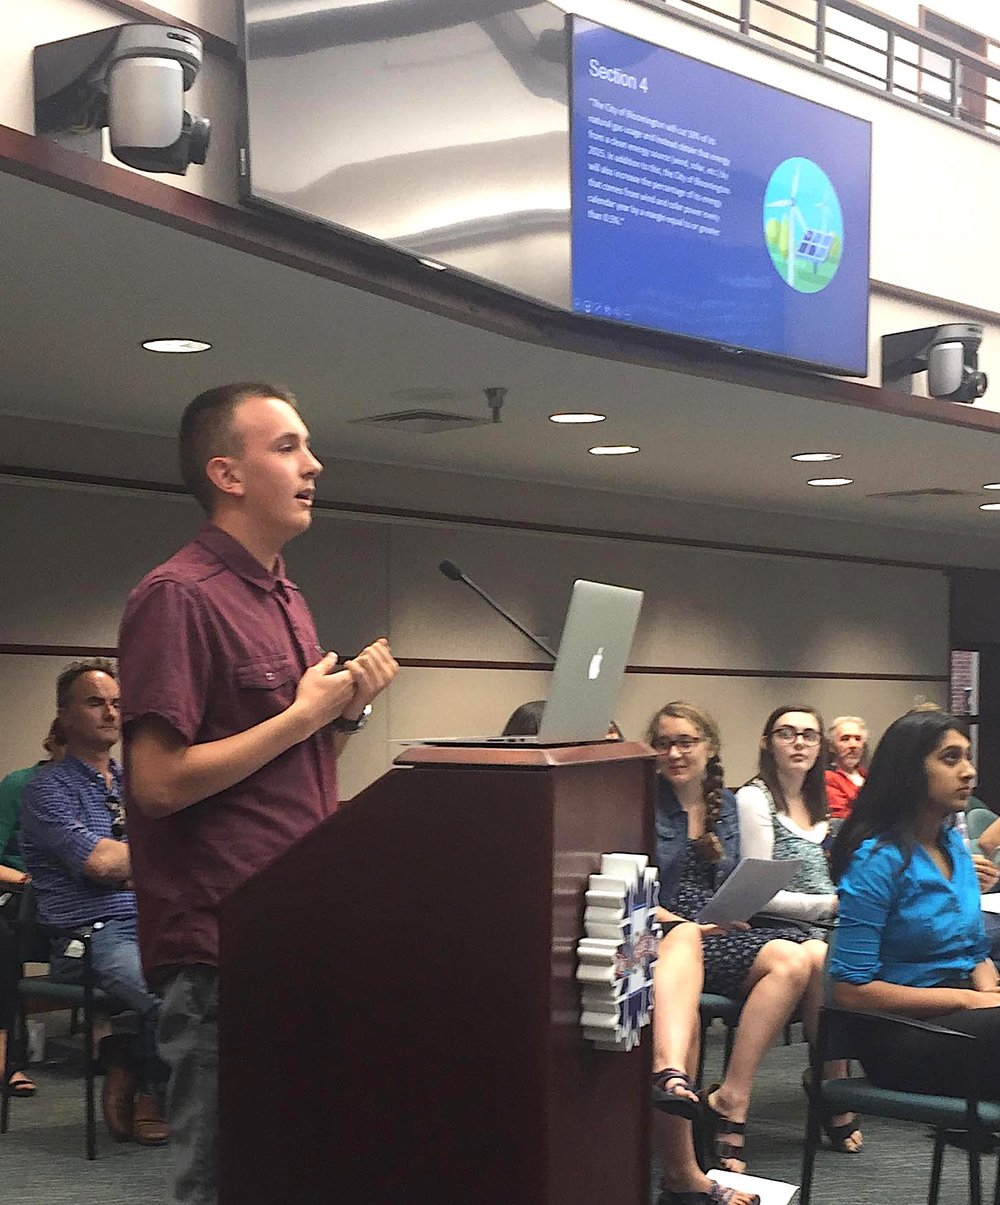 Blog author Jarrett, testifying on May 31.